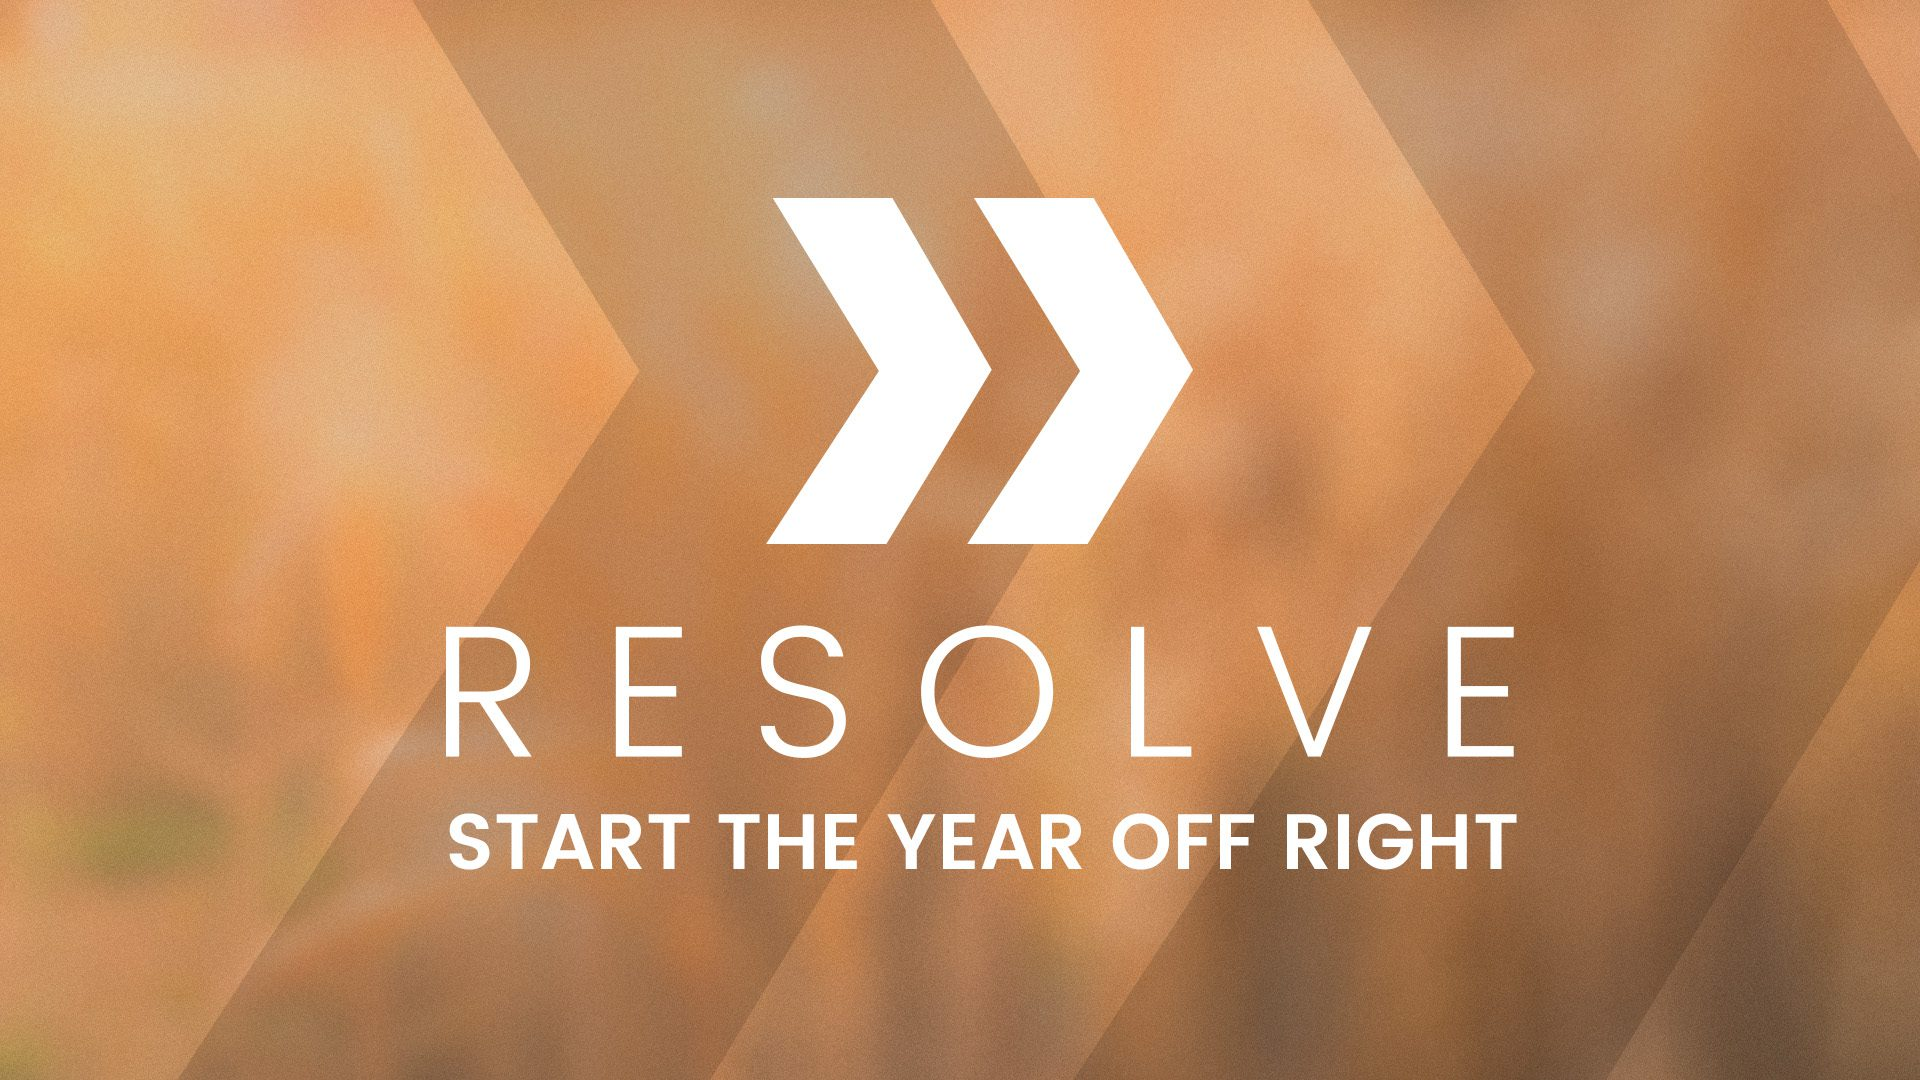 Resolve 2018: Start the year off right